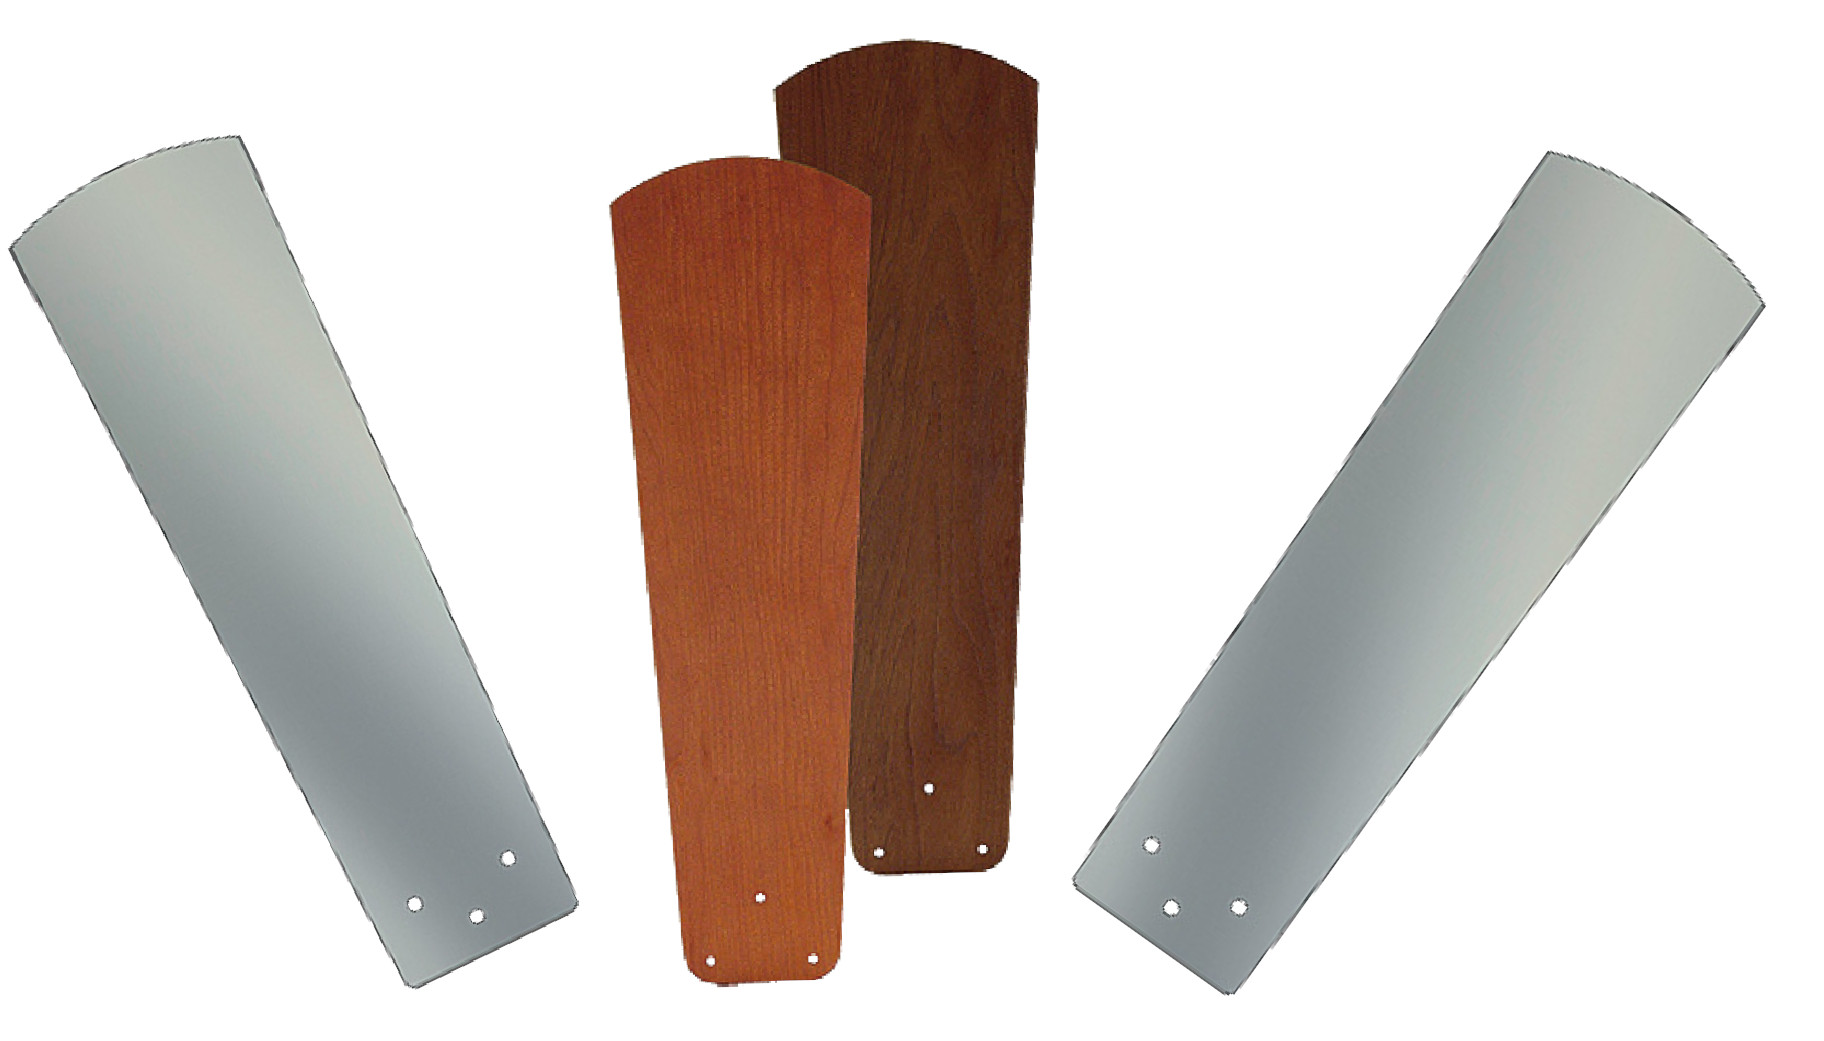 Ceiling Fan Blade Set For Fanimation The Involution Home Commercial Heaters Ventilation Ceiling Fans Uk